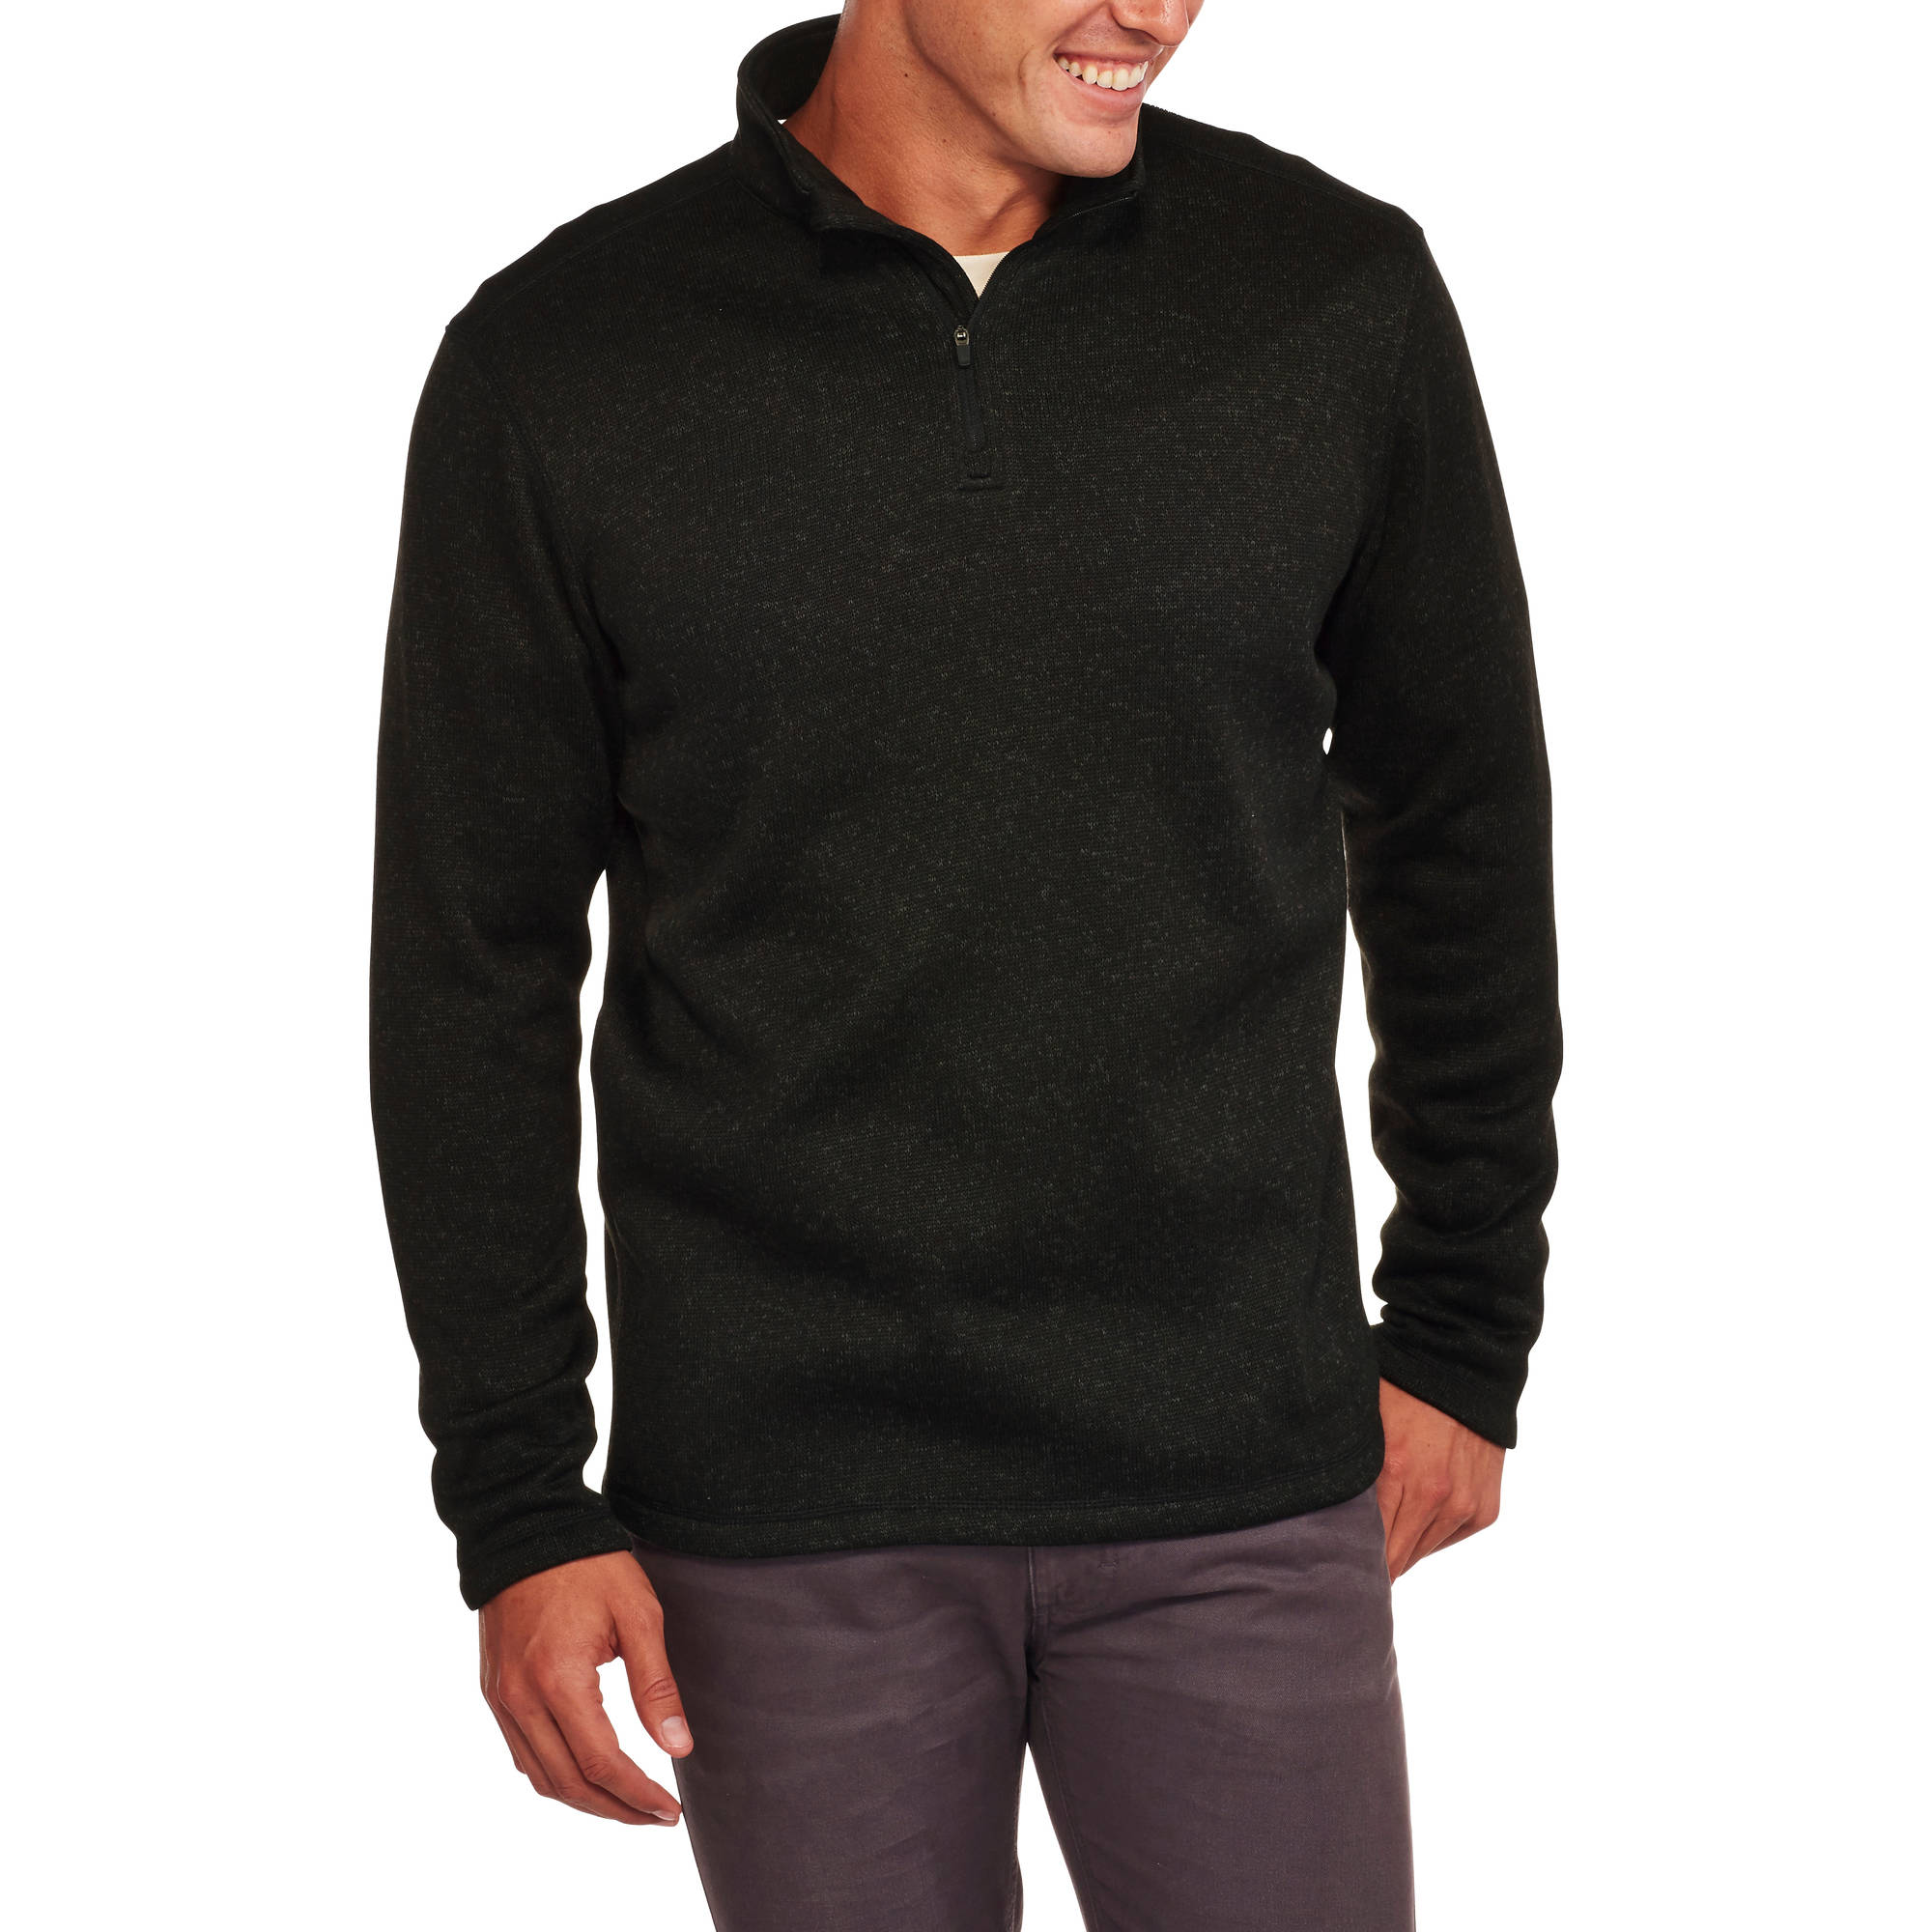 Faded Glory Men's 1/4 Zip Pullover Sweater - Walmart.com